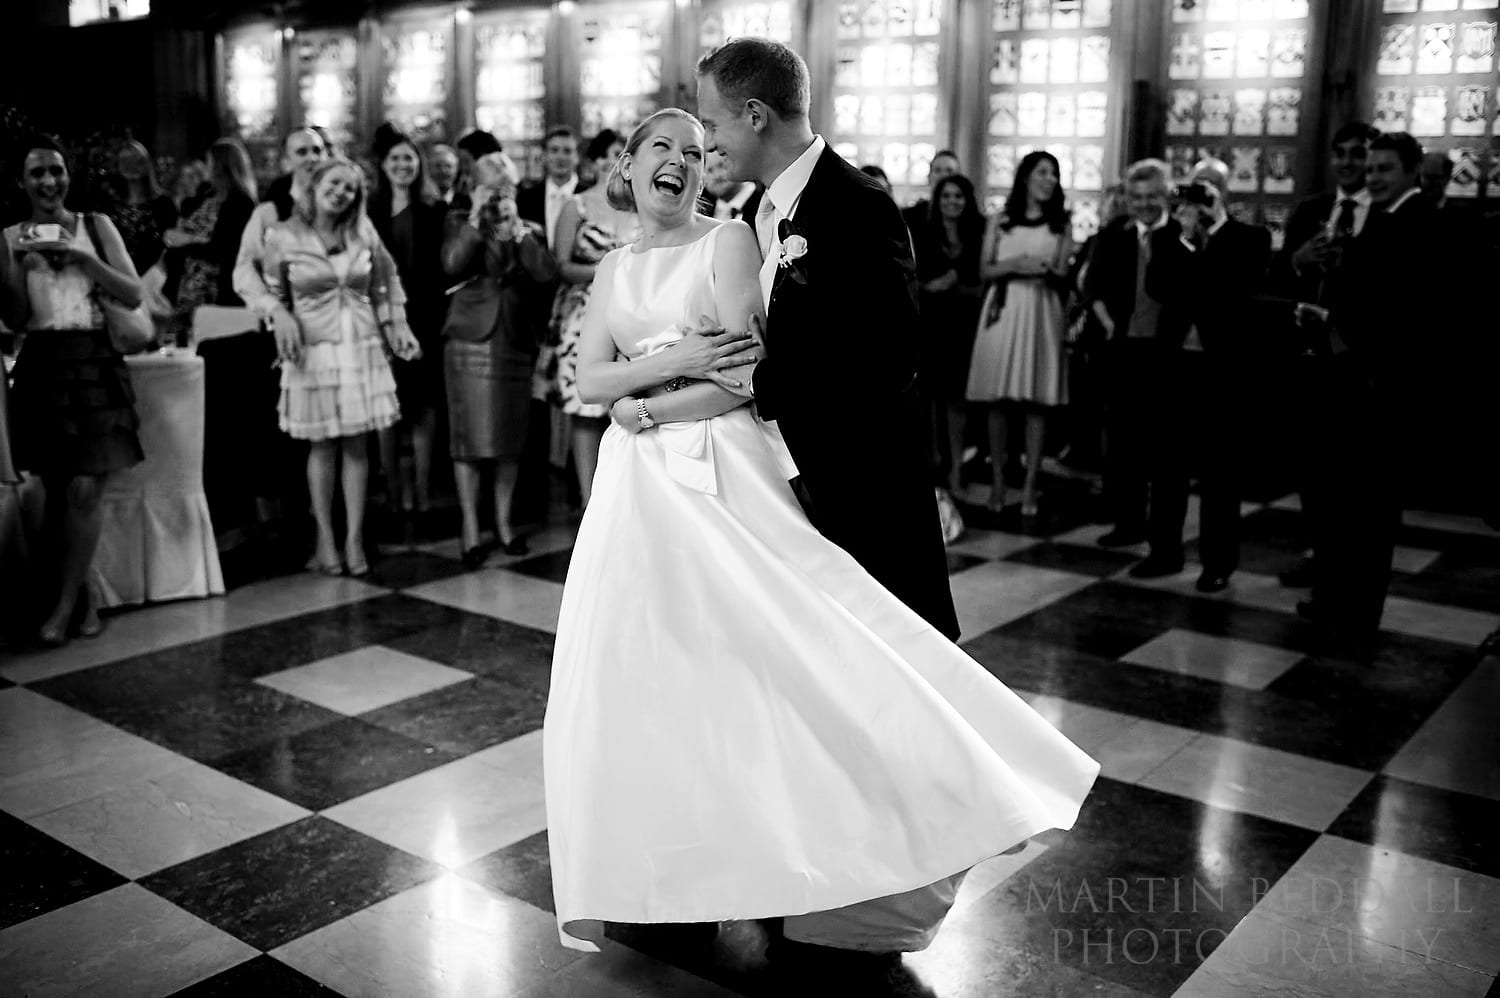 First dance at The Inner Temple Hall